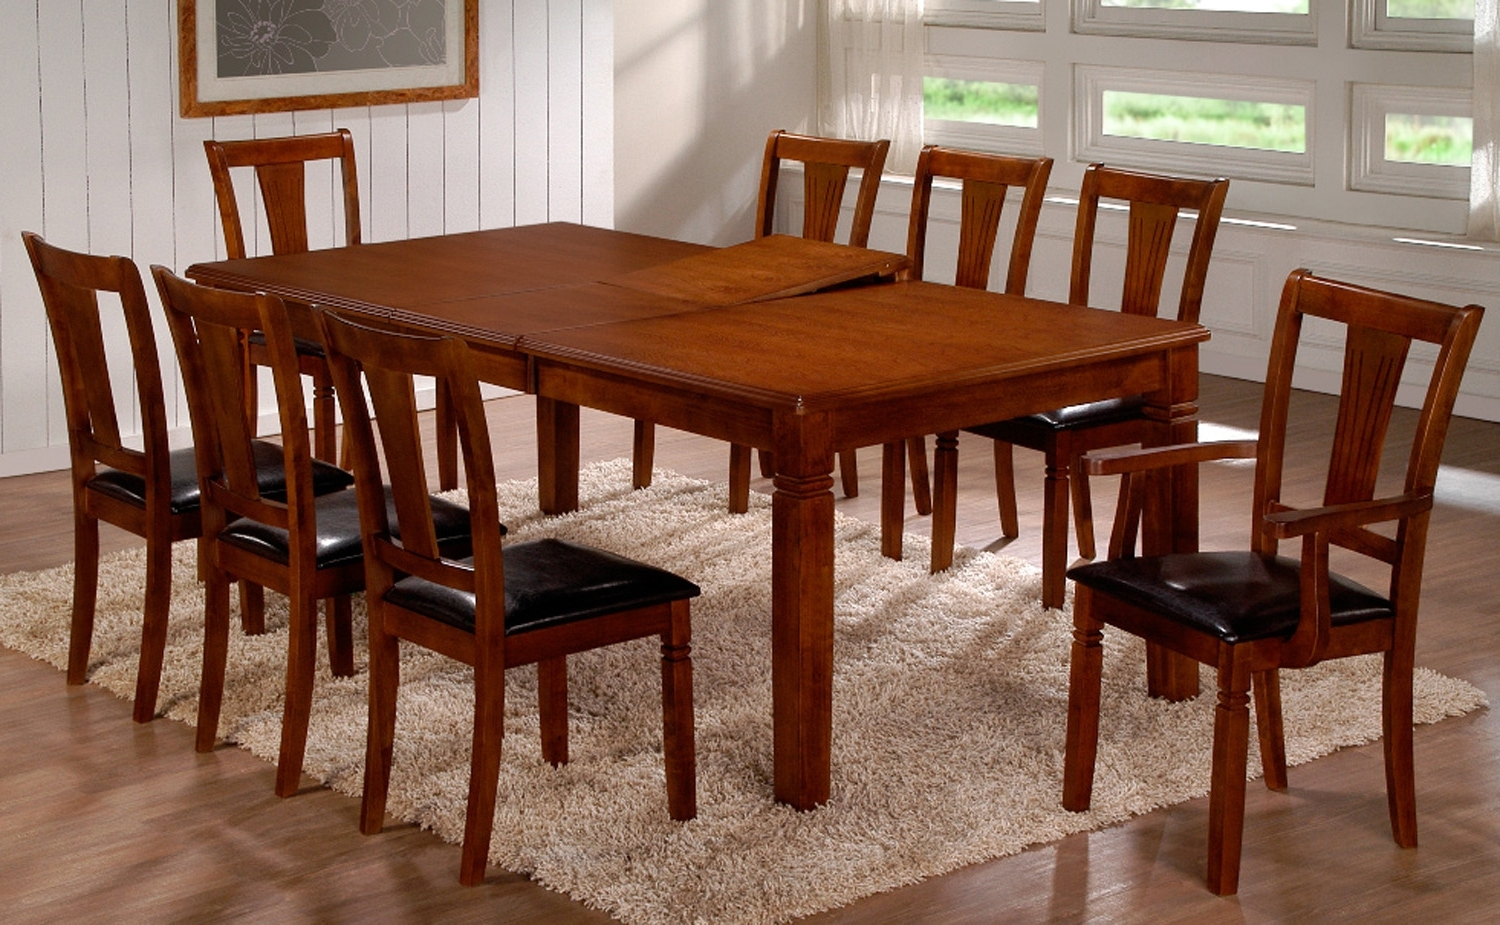 Trendy Dining Tables For 8 With Regard To 44 8 Seat Dining Room Table Sets, Thomasville Dining Room Table (View 25 of 25)